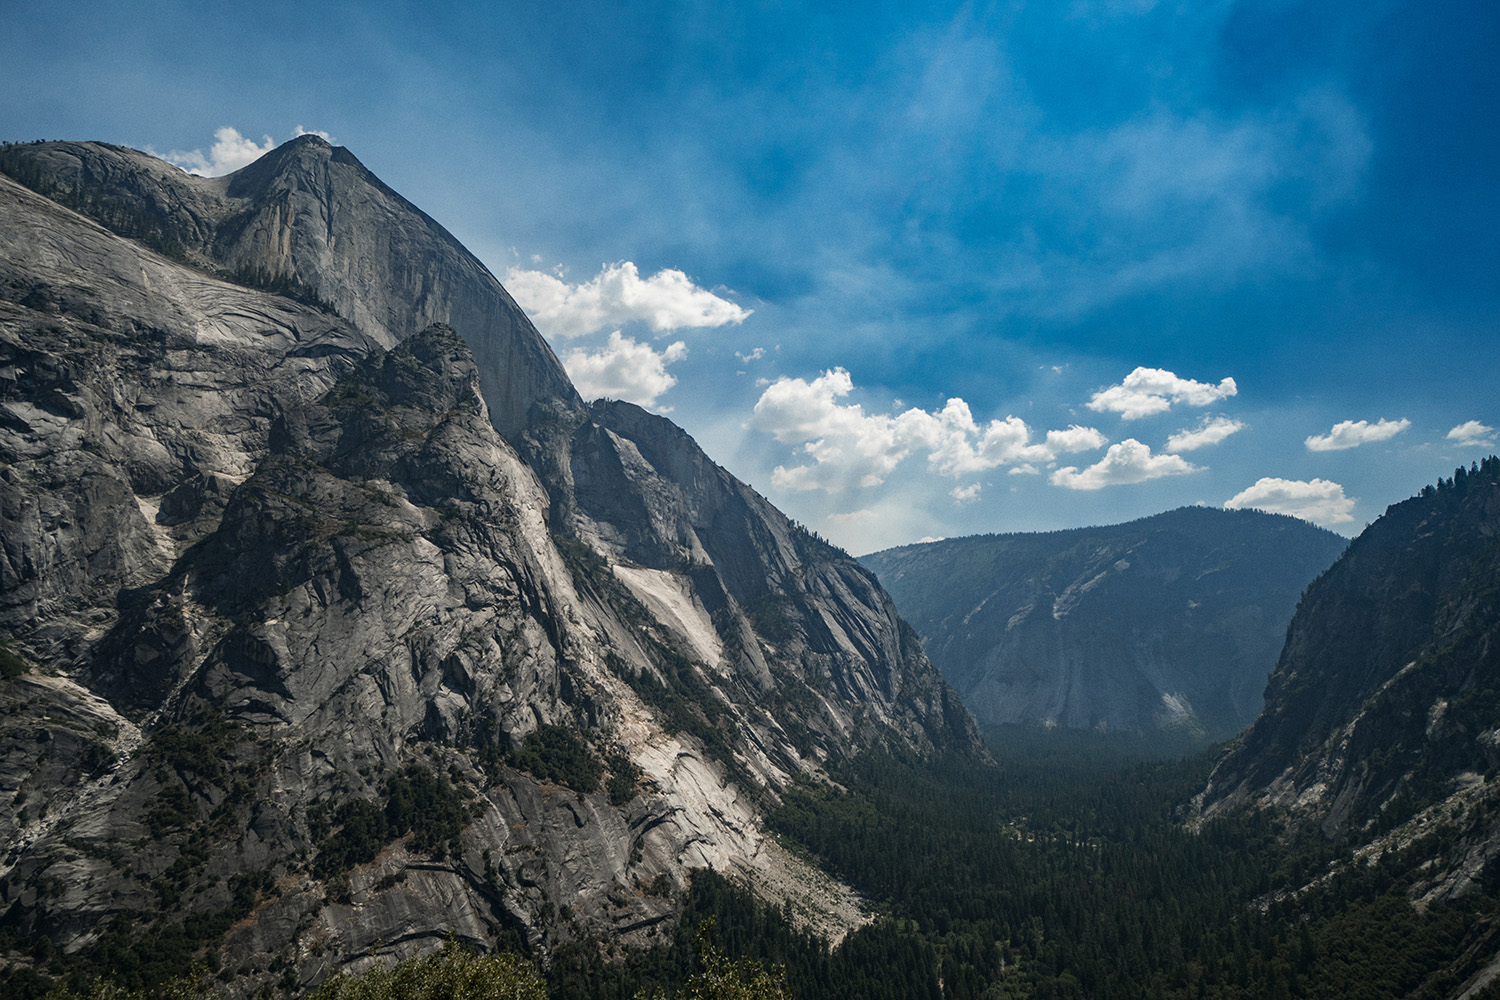 boldly-curious-yosemite-north-rim-day3-snow-creek-view.jpg